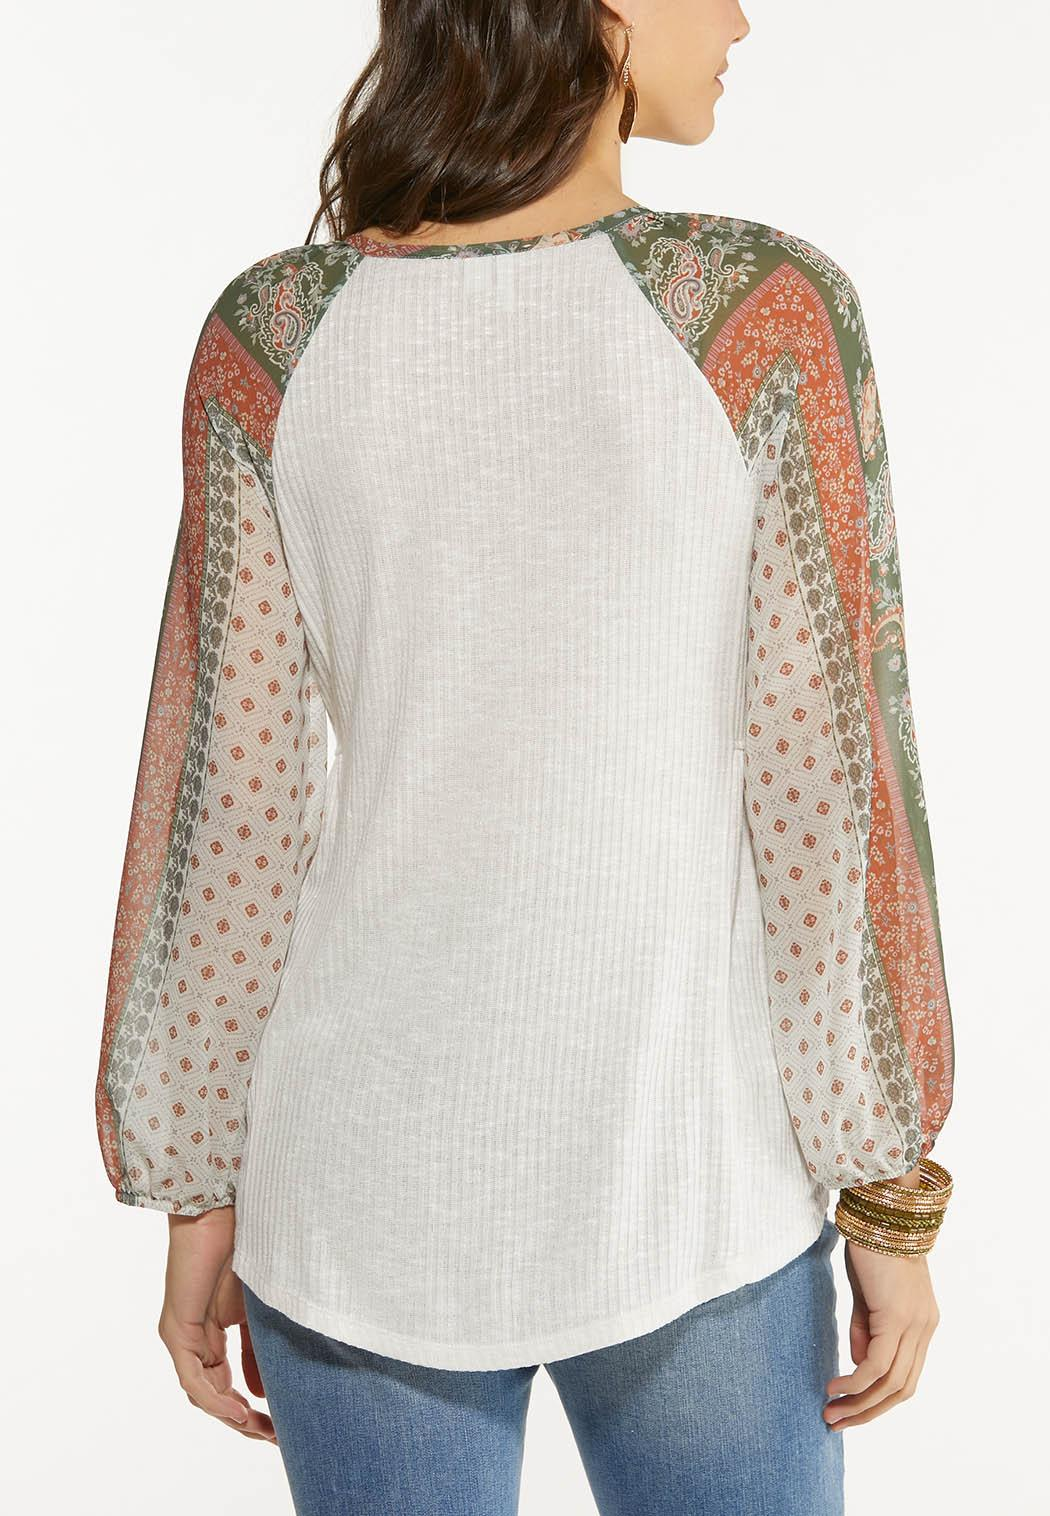 Plus Size Sheer Patchwork Sleeve Top (Item #44524795)